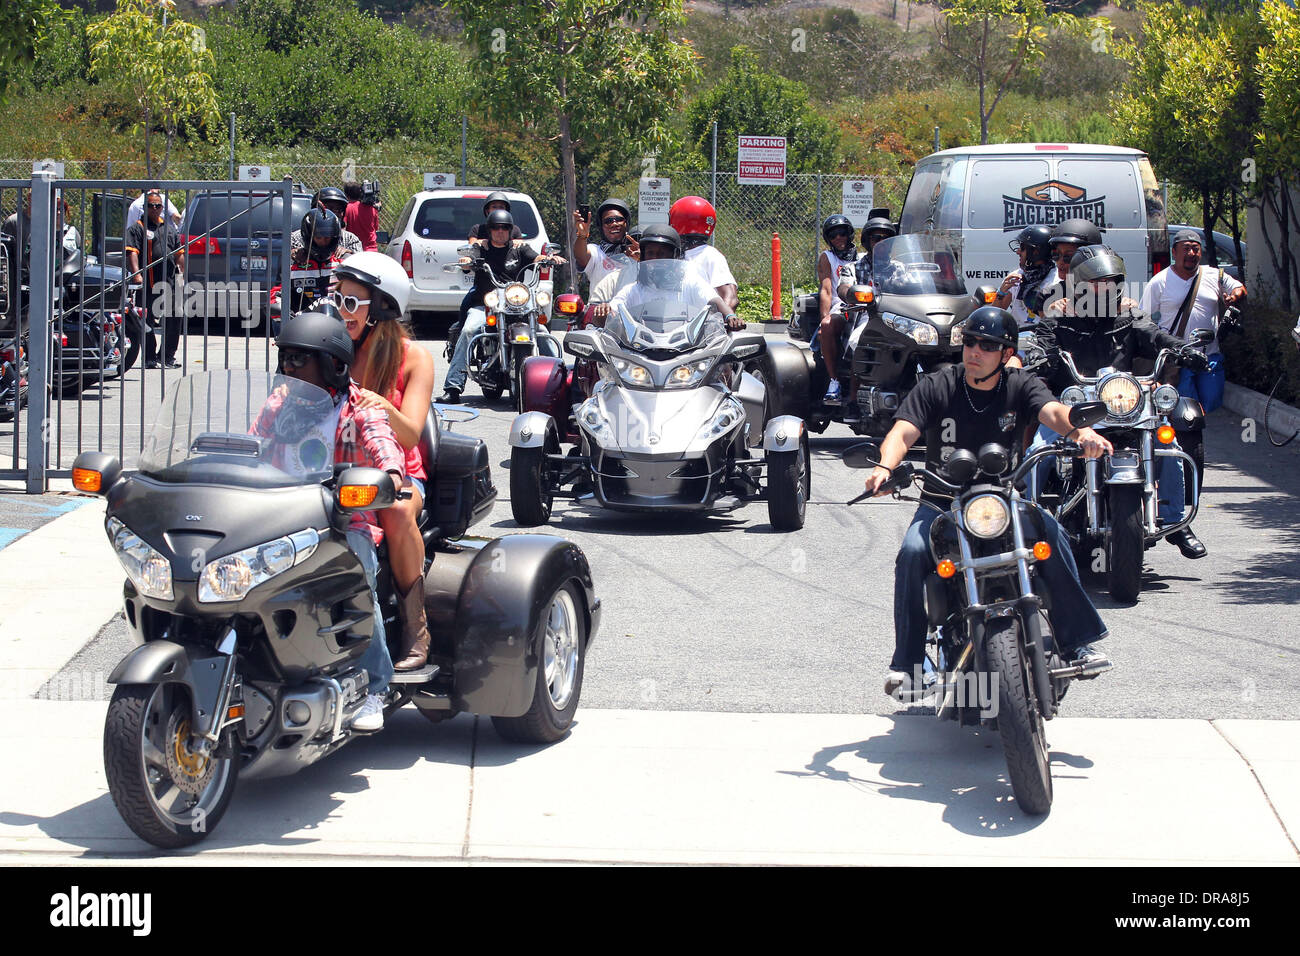 Atmosphere Professional football players from the English Premier League host an event at Eaglerider Motorcycles in support of 'armsaroundthechild.org' Los Angeles, California - 01.07.12 - Stock Image